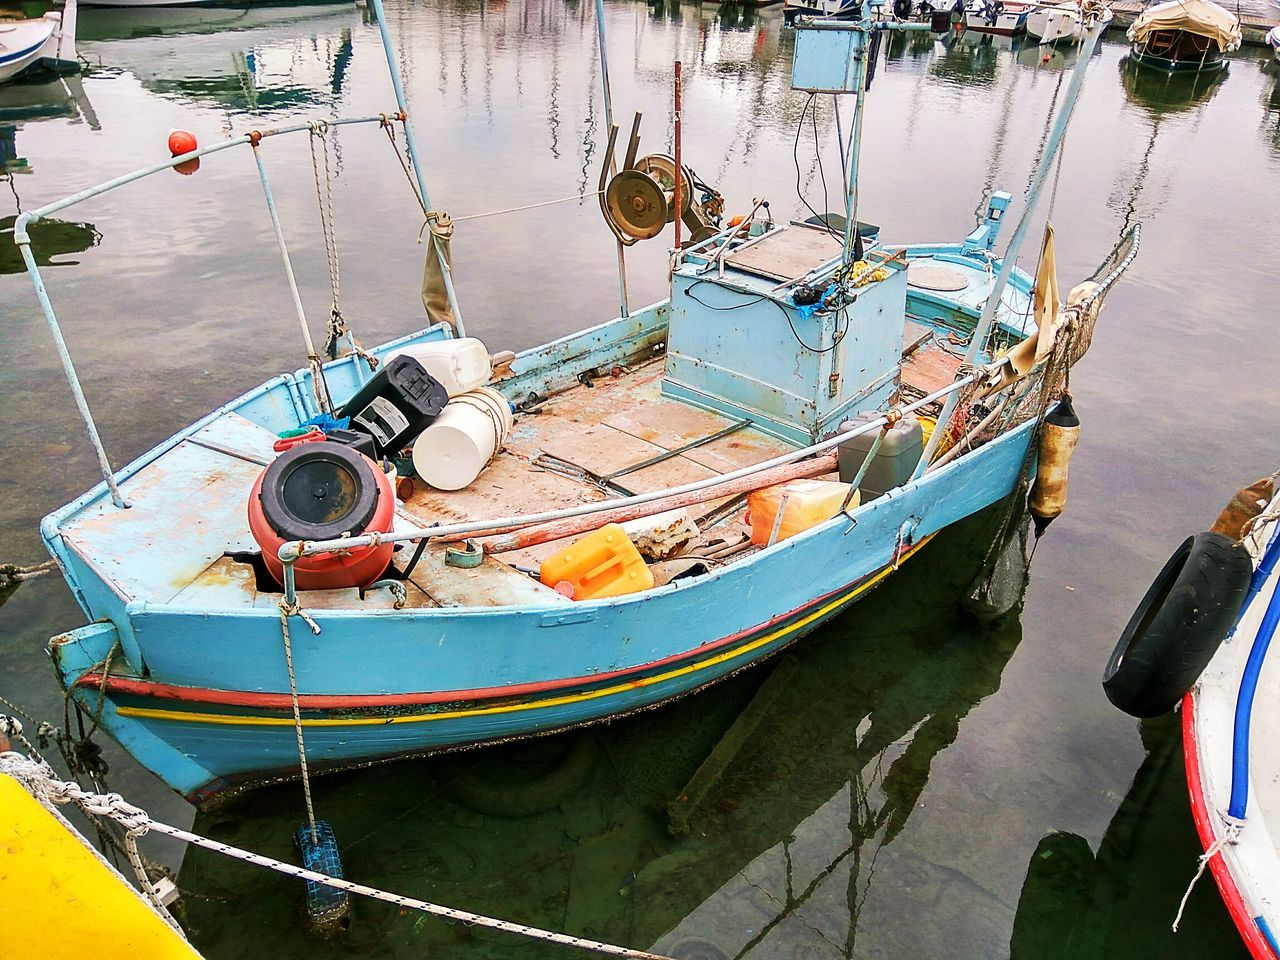 Boat Old Boat Water Nautical Vessel Reflection No People Outdoors Close-up Day Reflection In The Water Sea Fishing Boat Smartphonephotography Old Painting Contortion City Backround Sea_collection Sea Life Classic Marina Transportation Vintage Nature Fishing Port Fishing Life